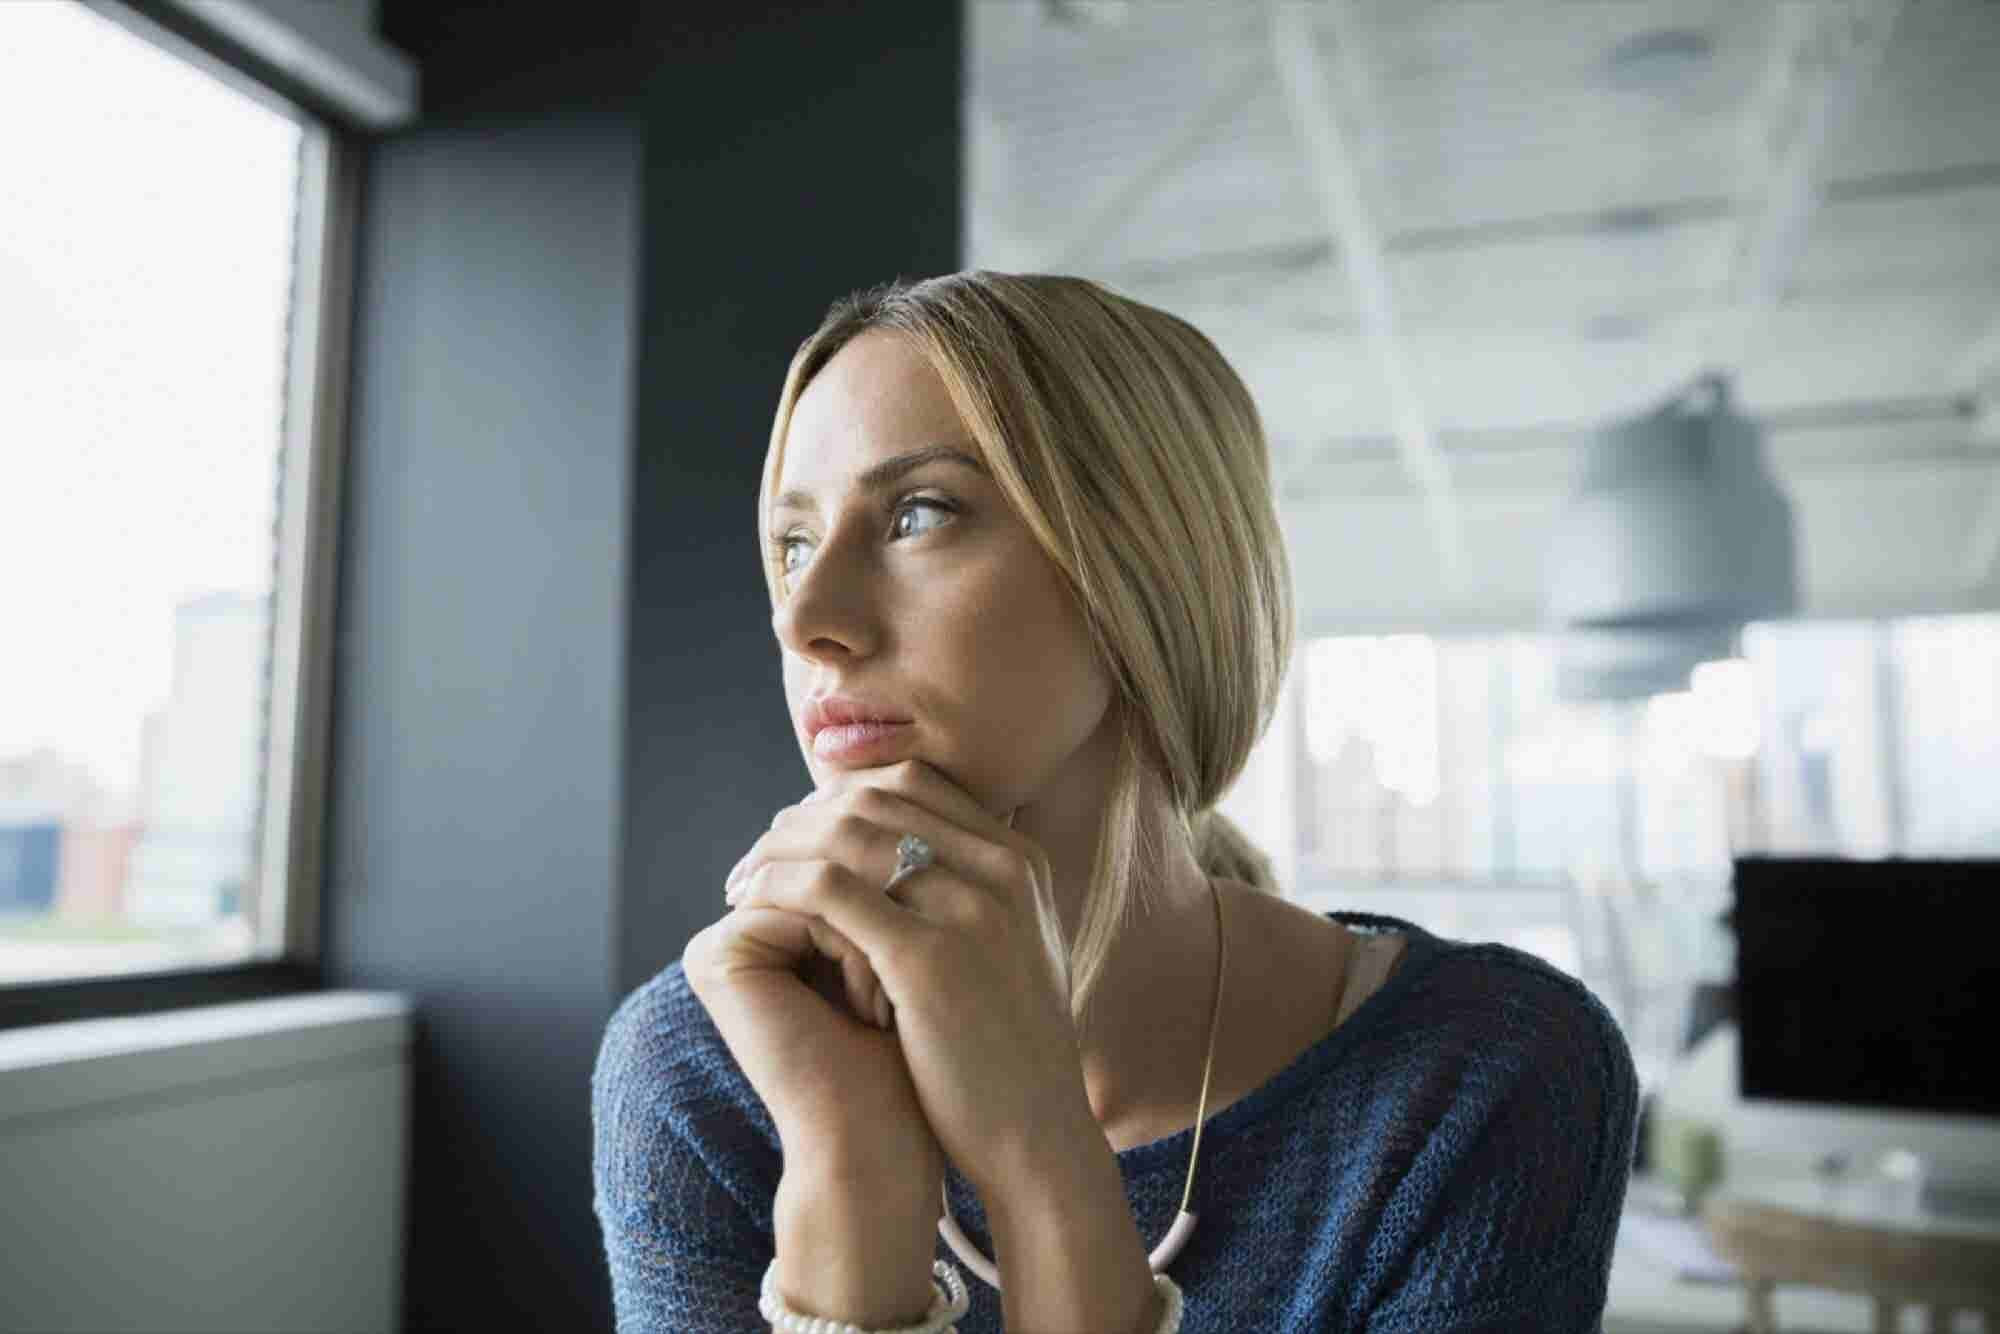 10 Ways to Move Forward After Suffering a Big Setback